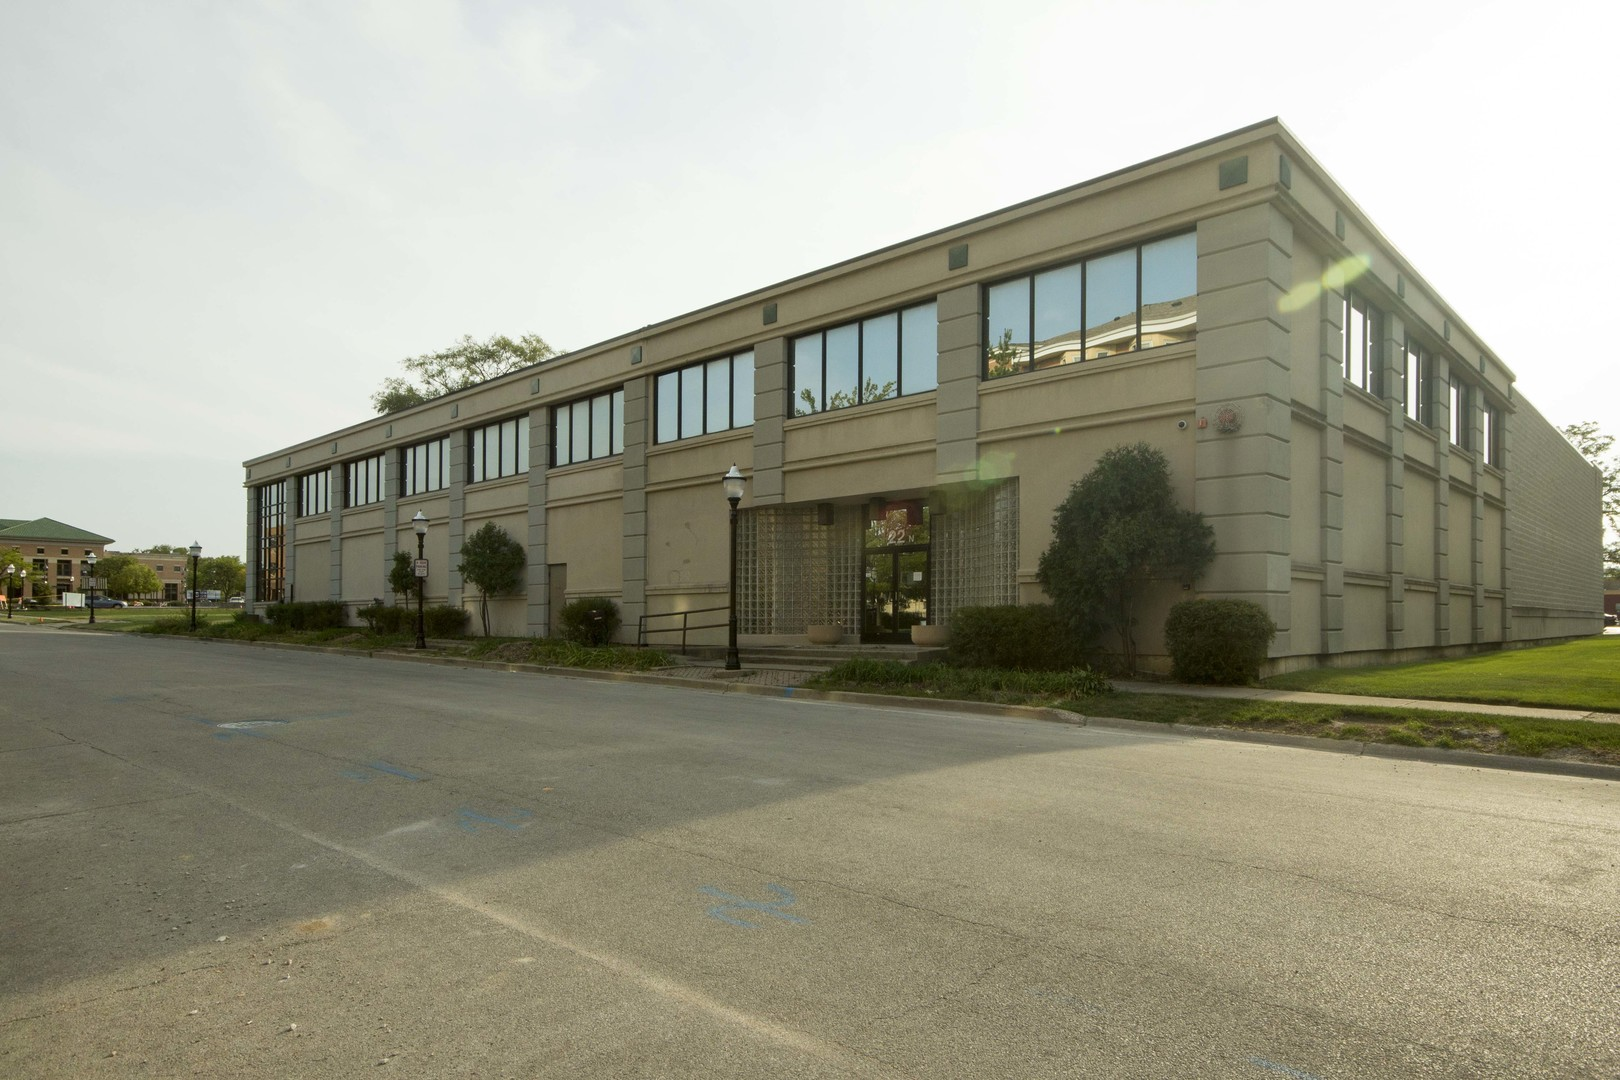 14-22 Center ,Bensenville, Illinois 60106